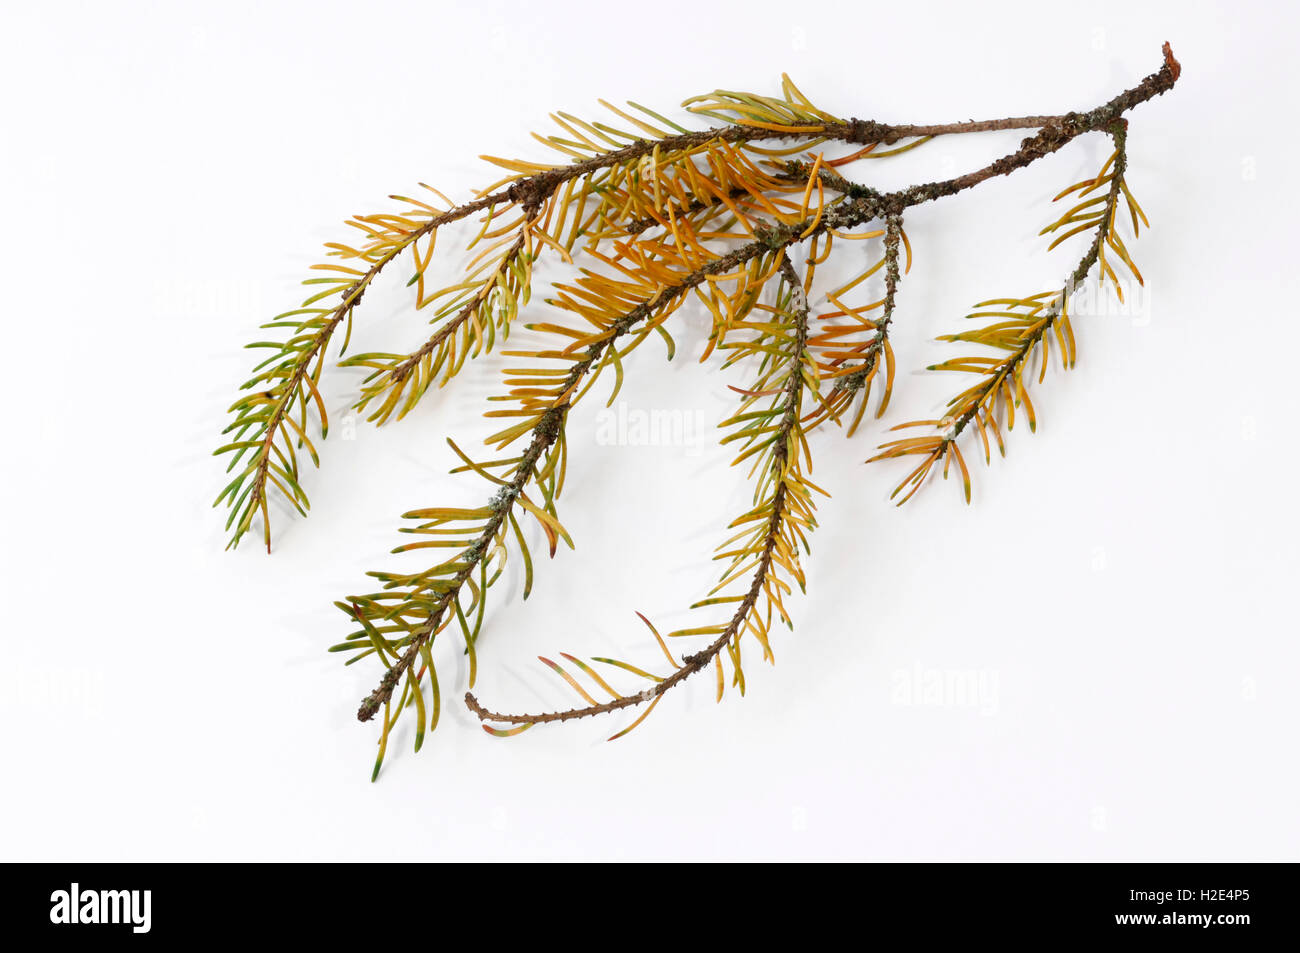 Norway Spruce, Common Spruce (Picea abies). Seriously damaged twig with fallen off needles and discoloration of - Stock Image